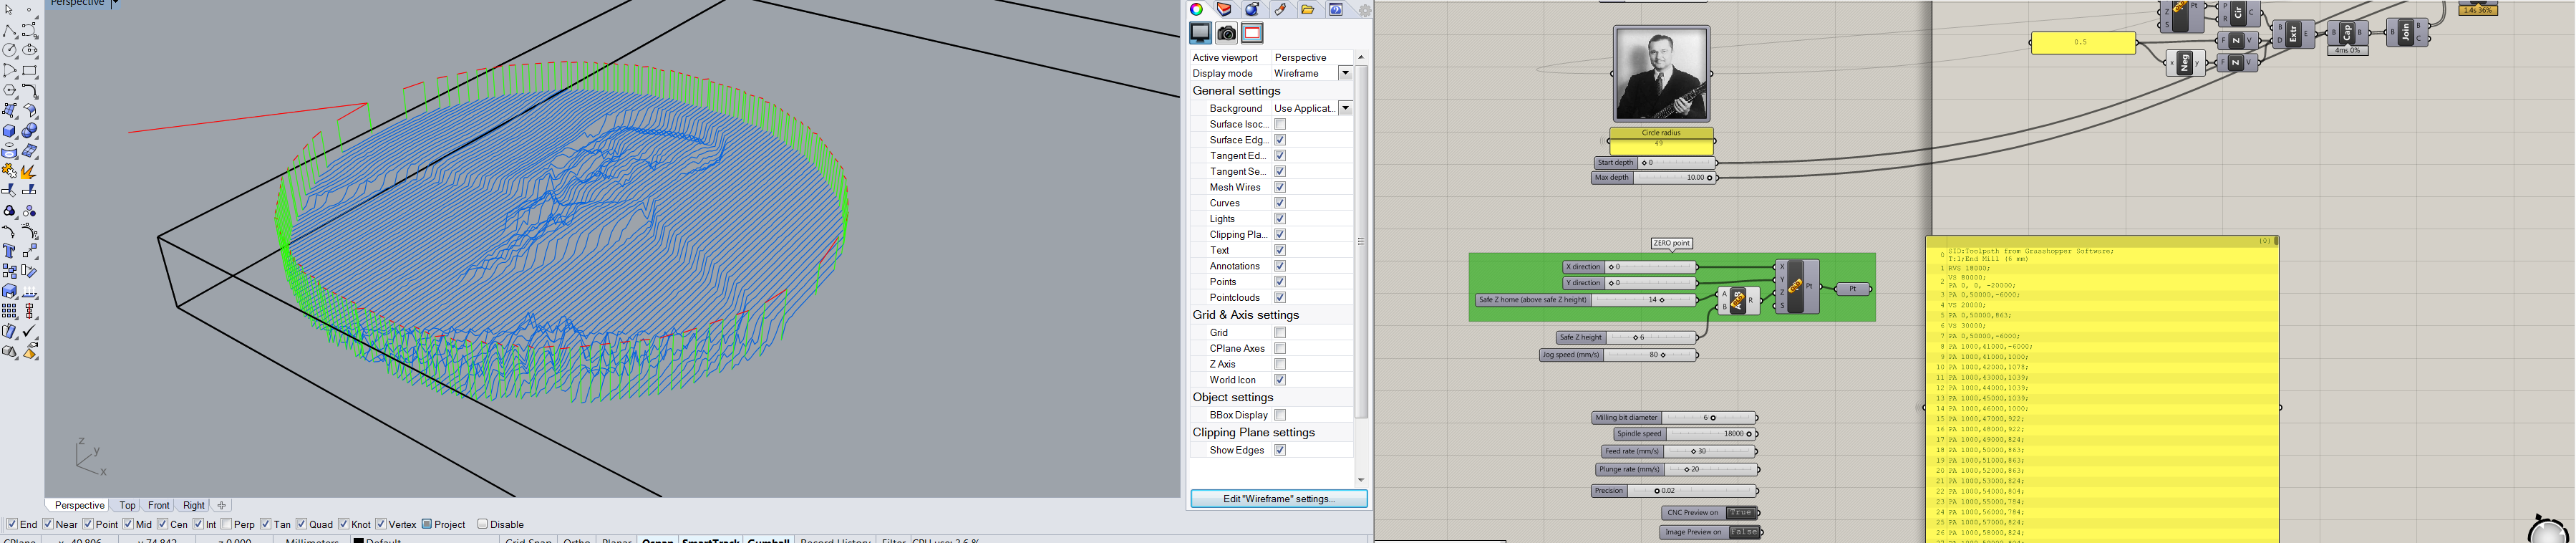 Picture of Example 1: Convert Image to 3D-milling Using a V-bit